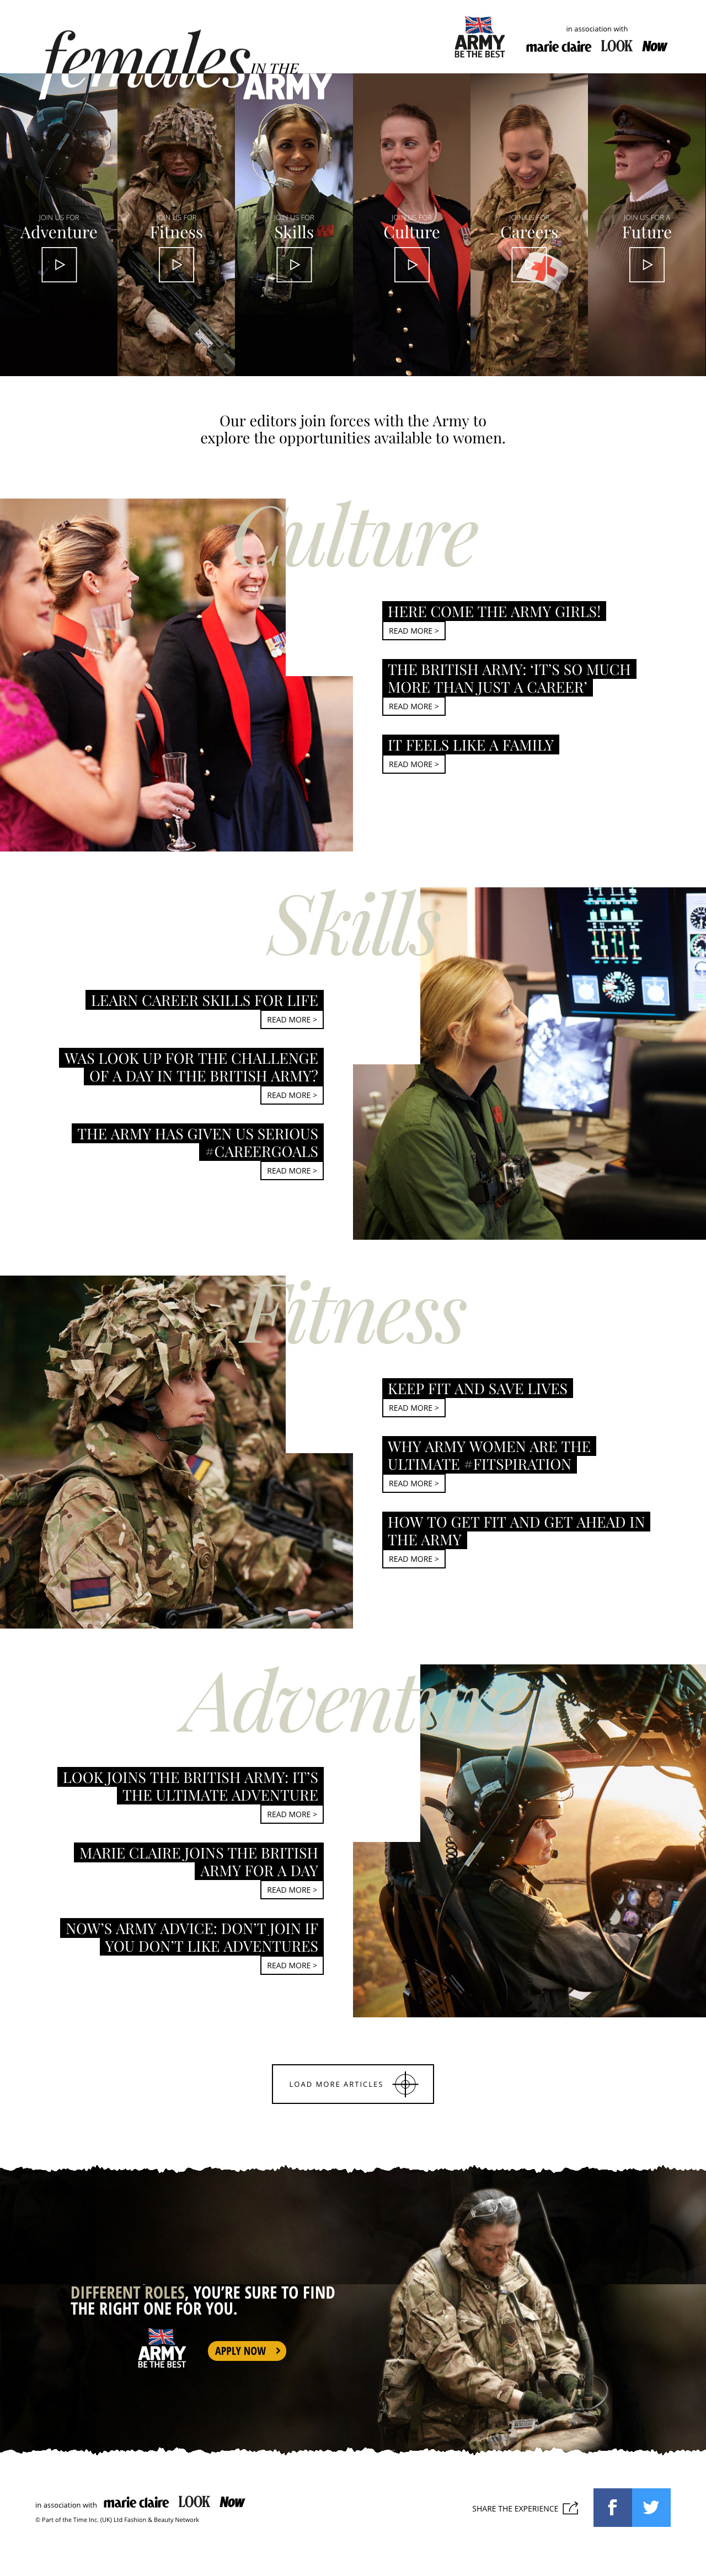 Females in the Army Website Screenshot